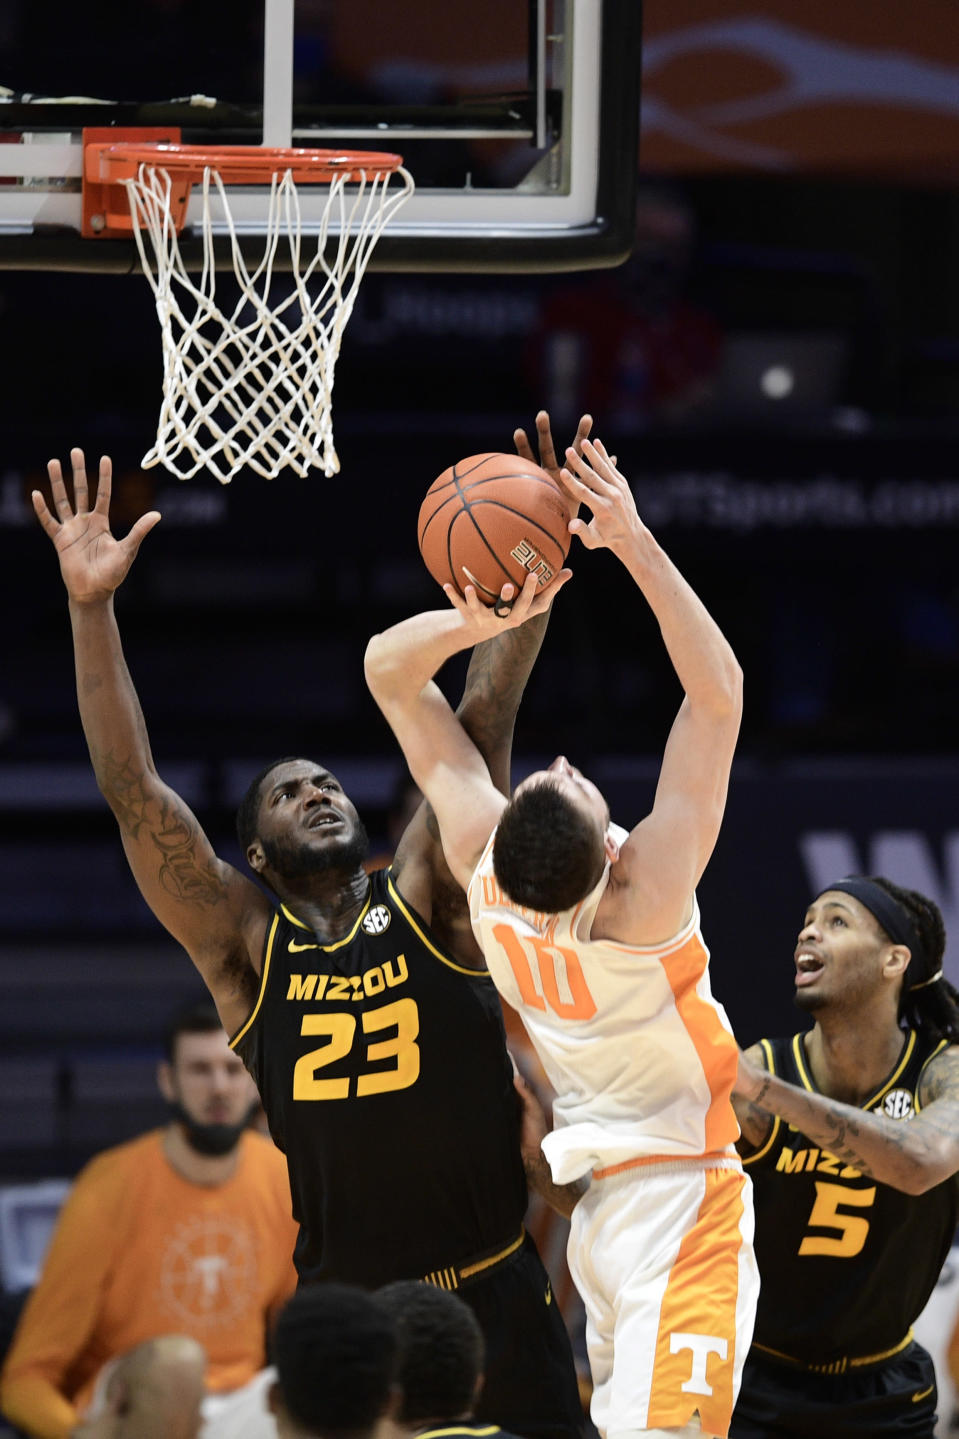 Missouri forward Jeremiah Tilmon (23) defends against Tennessee forward John Fulkerson (10) during an NCAA college basketball game Saturday, Jan. 23, 2021, in Knoxville, Tenn. (Calvin Mattheis/Knoxville New-Sentinel via AP, pool)